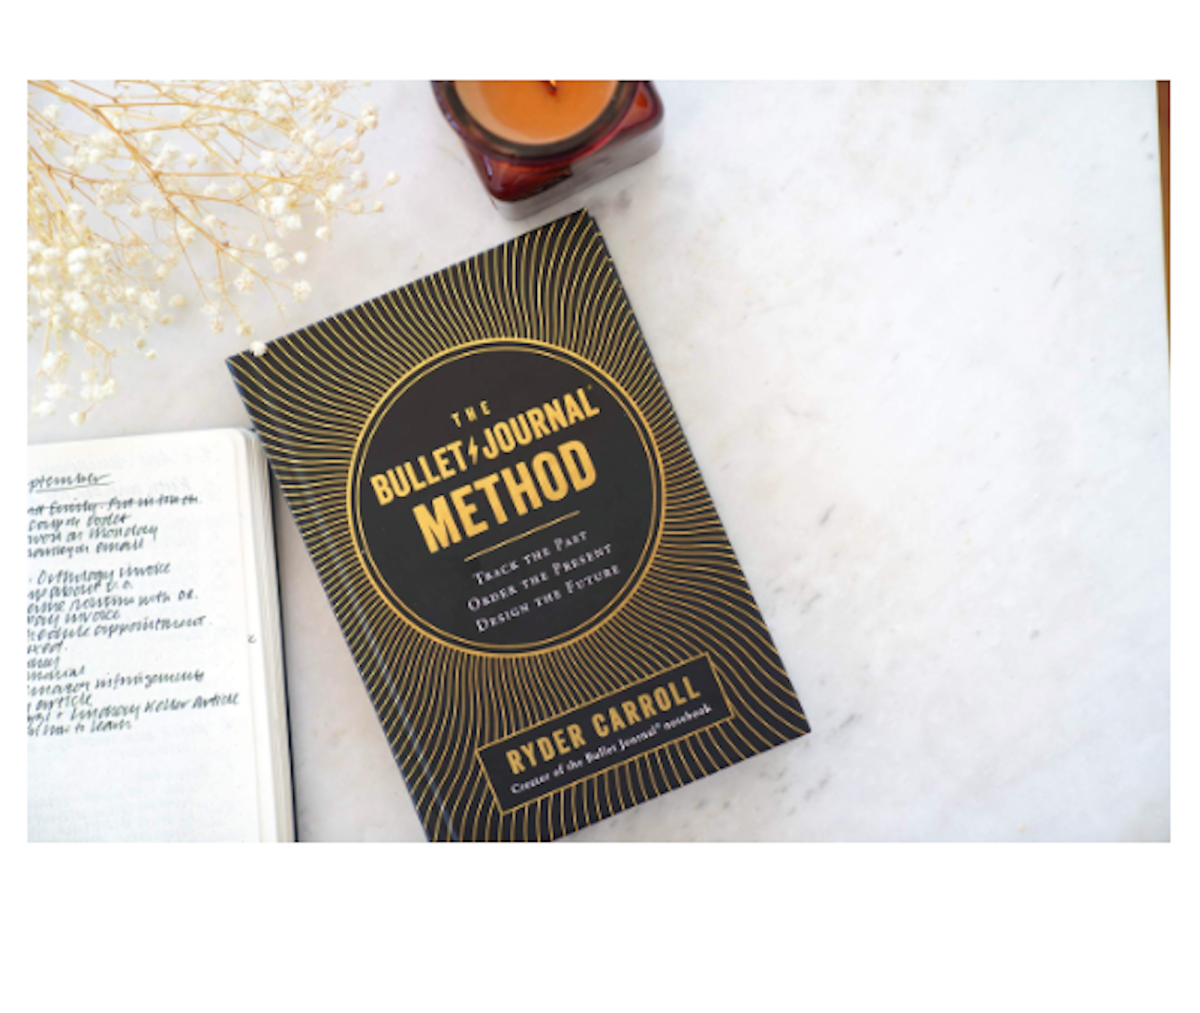 using the bullet journal method, bullet journal, the bullet journal method by ryder carroll, review of the bullet journal method, ryder carroll's bullet journal, how to use a bullet journal, bullet journal, intentional living, mindfulness, mental health, journal for better mental health